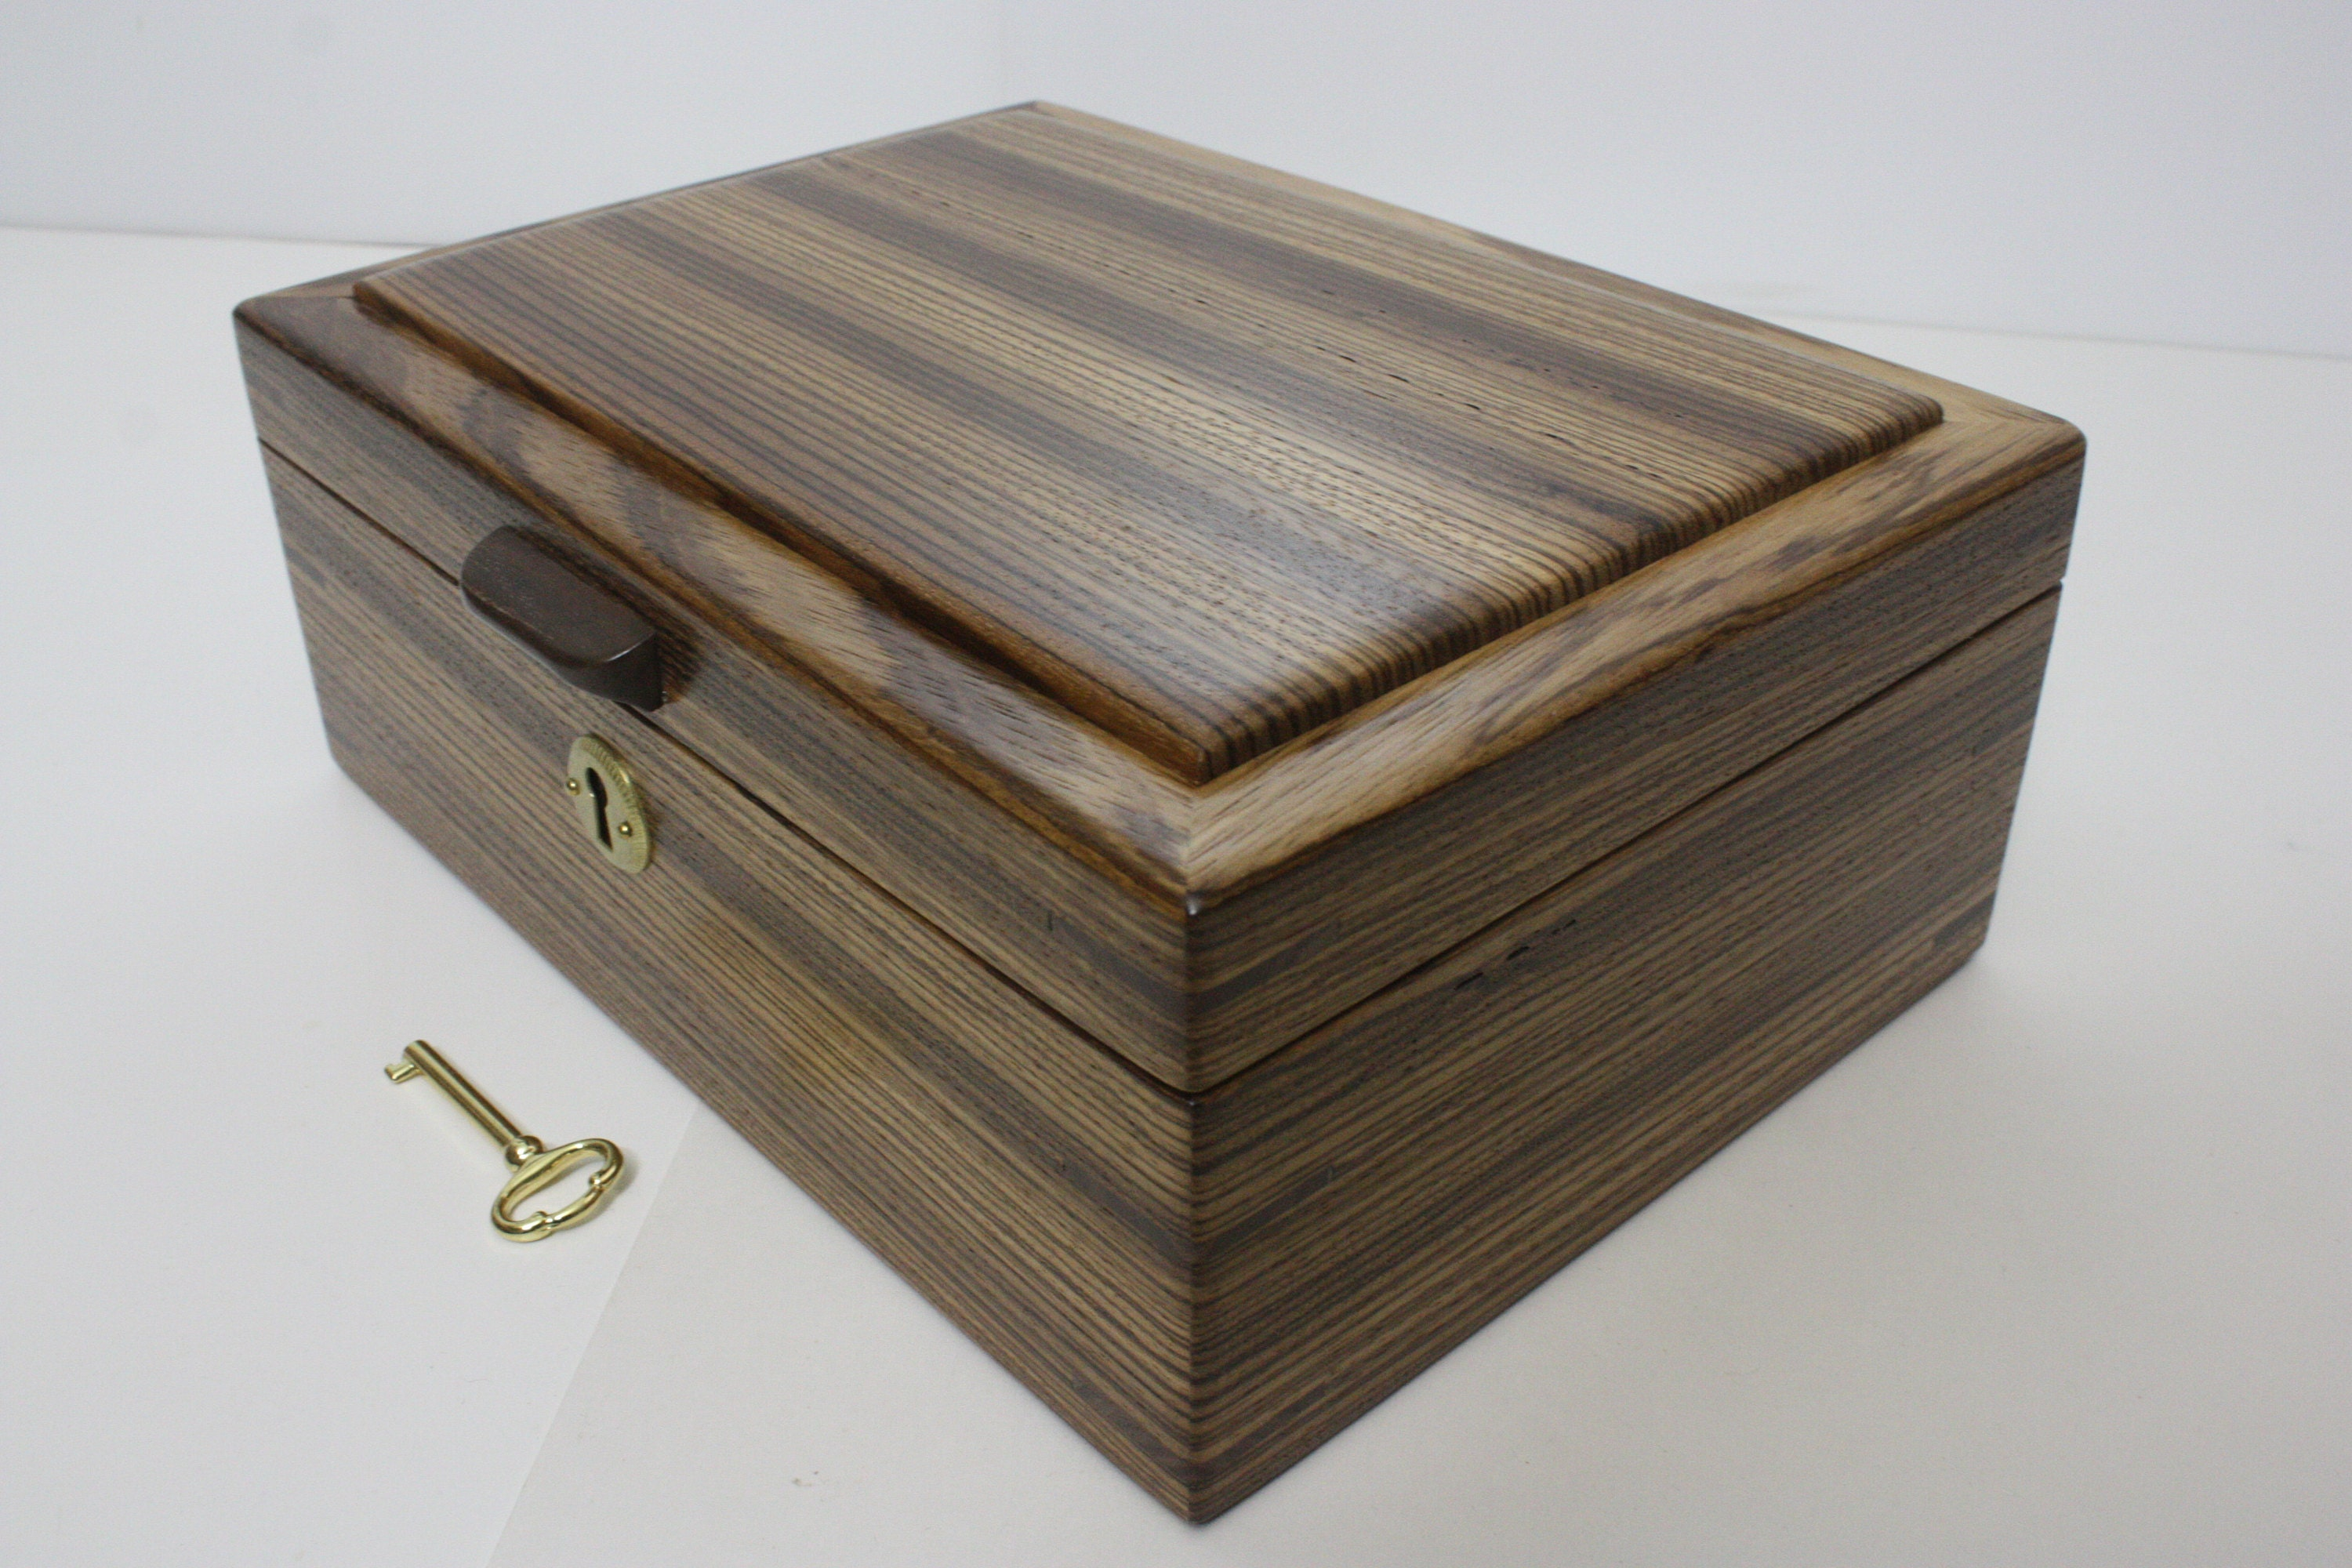 Handmade Zebrawood Locking Wood Box